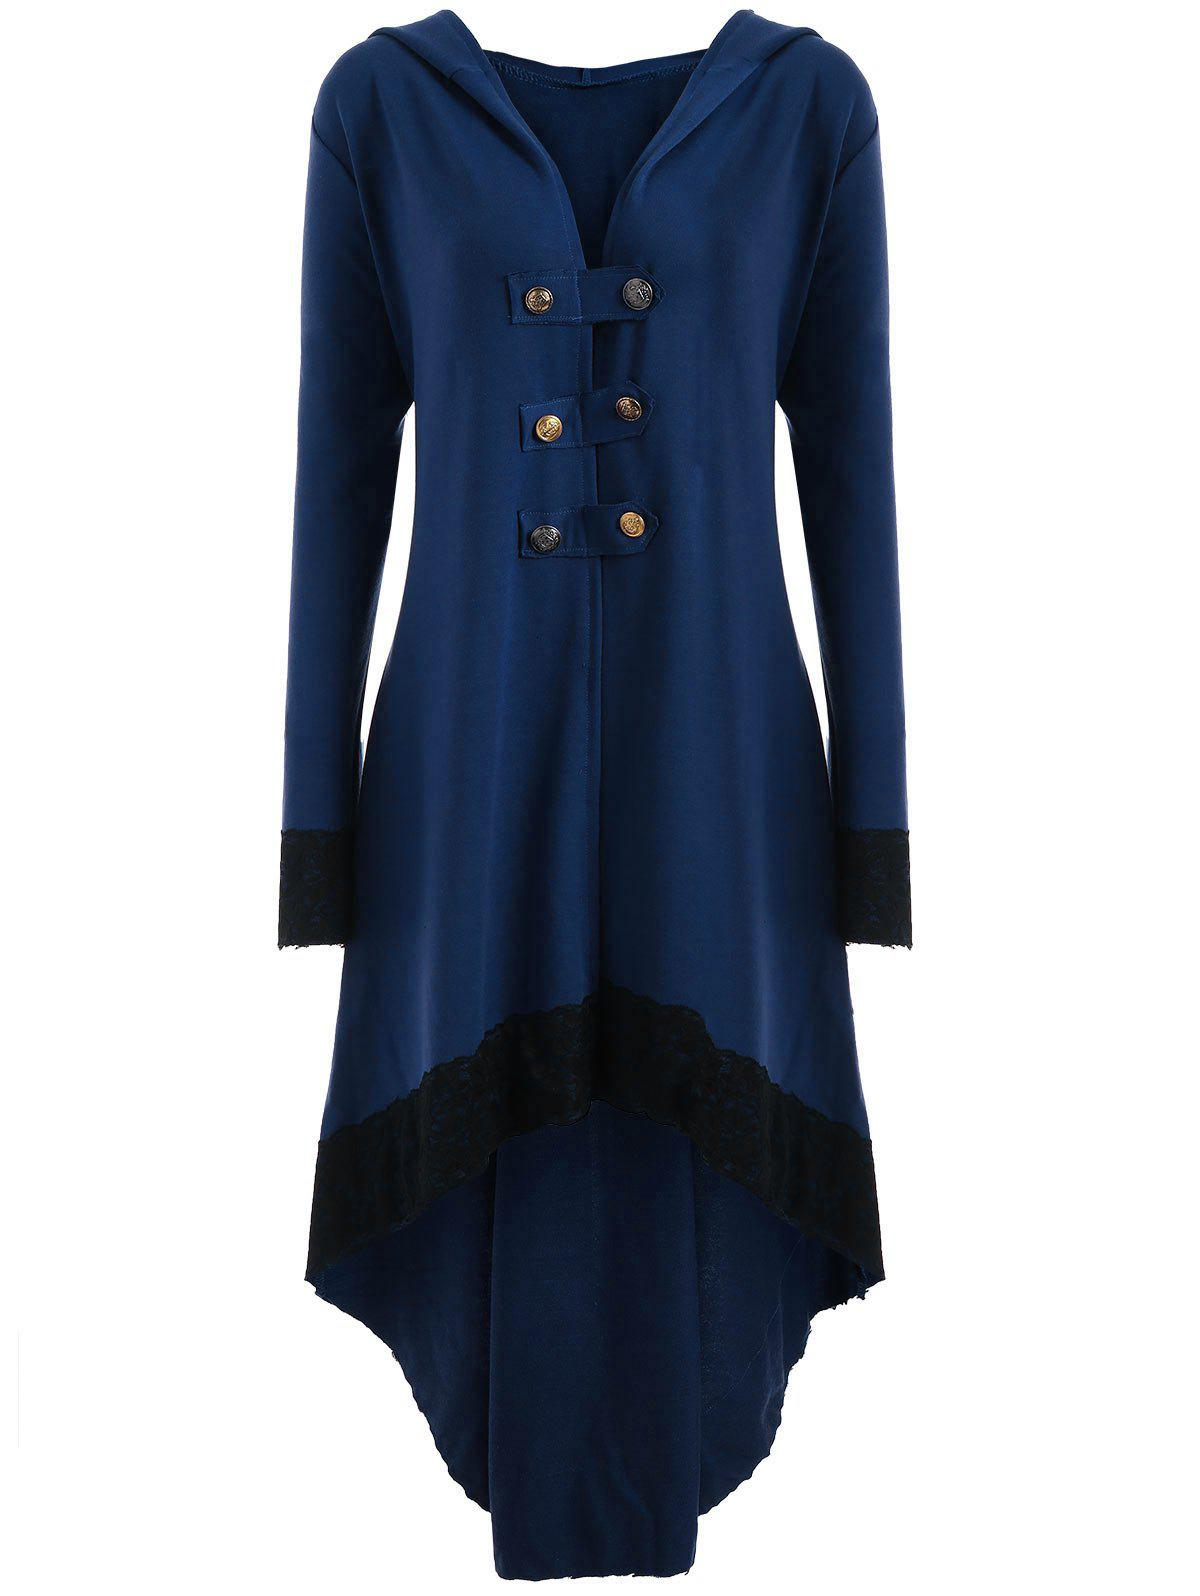 High Low Hooded Plus Size Lace-up CoatWOMEN<br><br>Size: 5XL; Color: BLUE; Clothes Type: Others; Material: Polyester,Spandex; Type: Asymmetric Length; Shirt Length: Long; Sleeve Length: Full; Collar: Hooded; Pattern Type: Solid; Style: Fashion; Season: Fall,Spring; Weight: 0.6200kg; Package Contents: 1 x Coat;